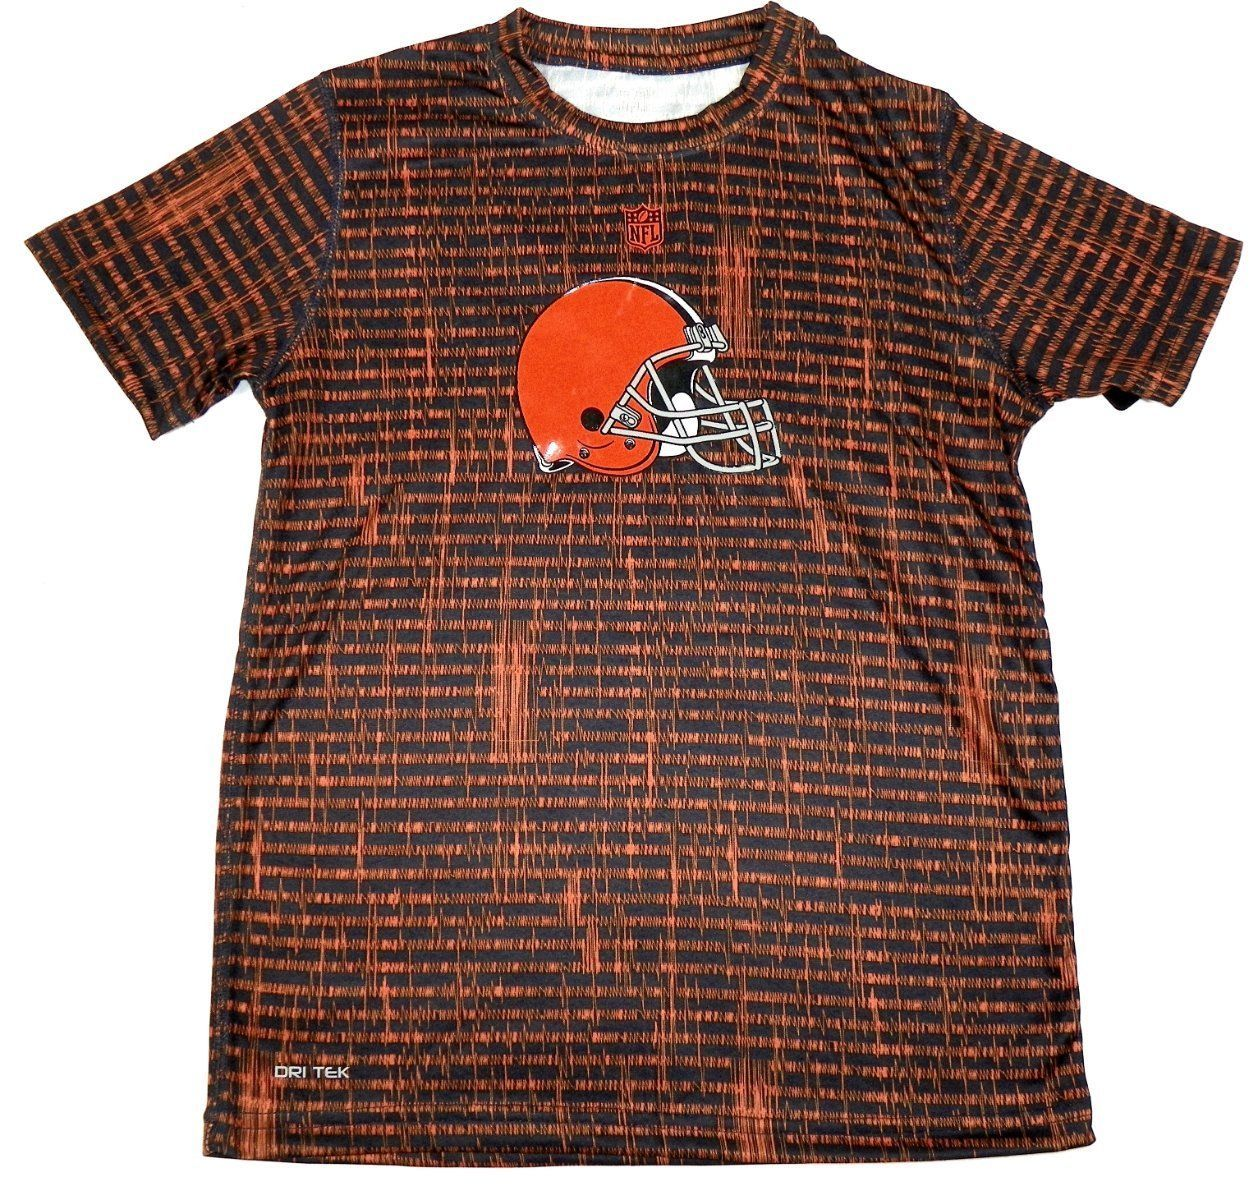 Cleveland Browns Boy's 8-18 Shirt NFL Resounding Short Sleeve Dri Tek Tee